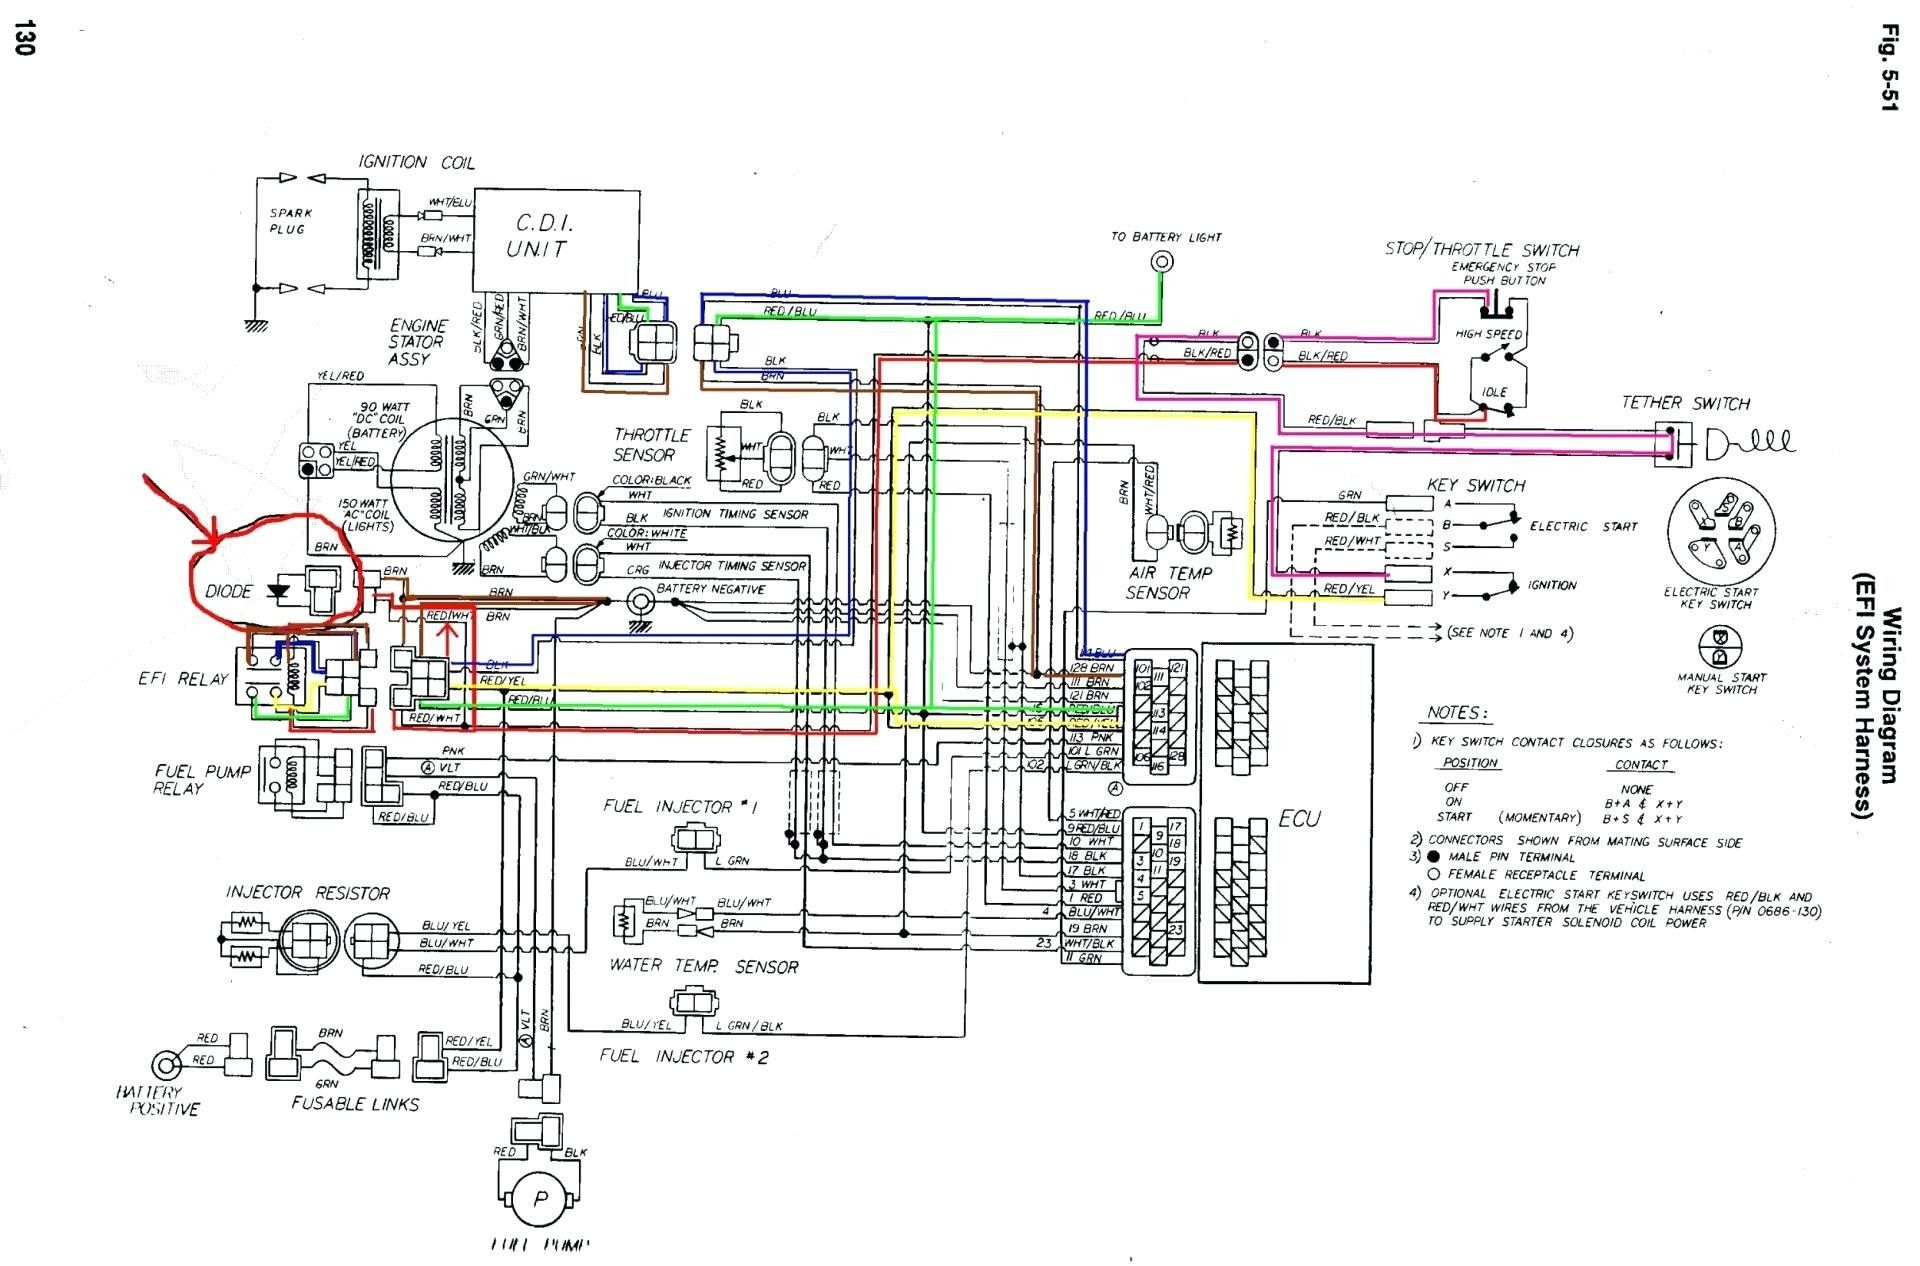 Wiring Diagram Ac Mobil Avanza #diagram #diagramtemplate #diagramsample  Check more at https://servisi.co/wiring-diagr… | Diagram, Ceiling fan wiring,  Ceiling lightsPinterest